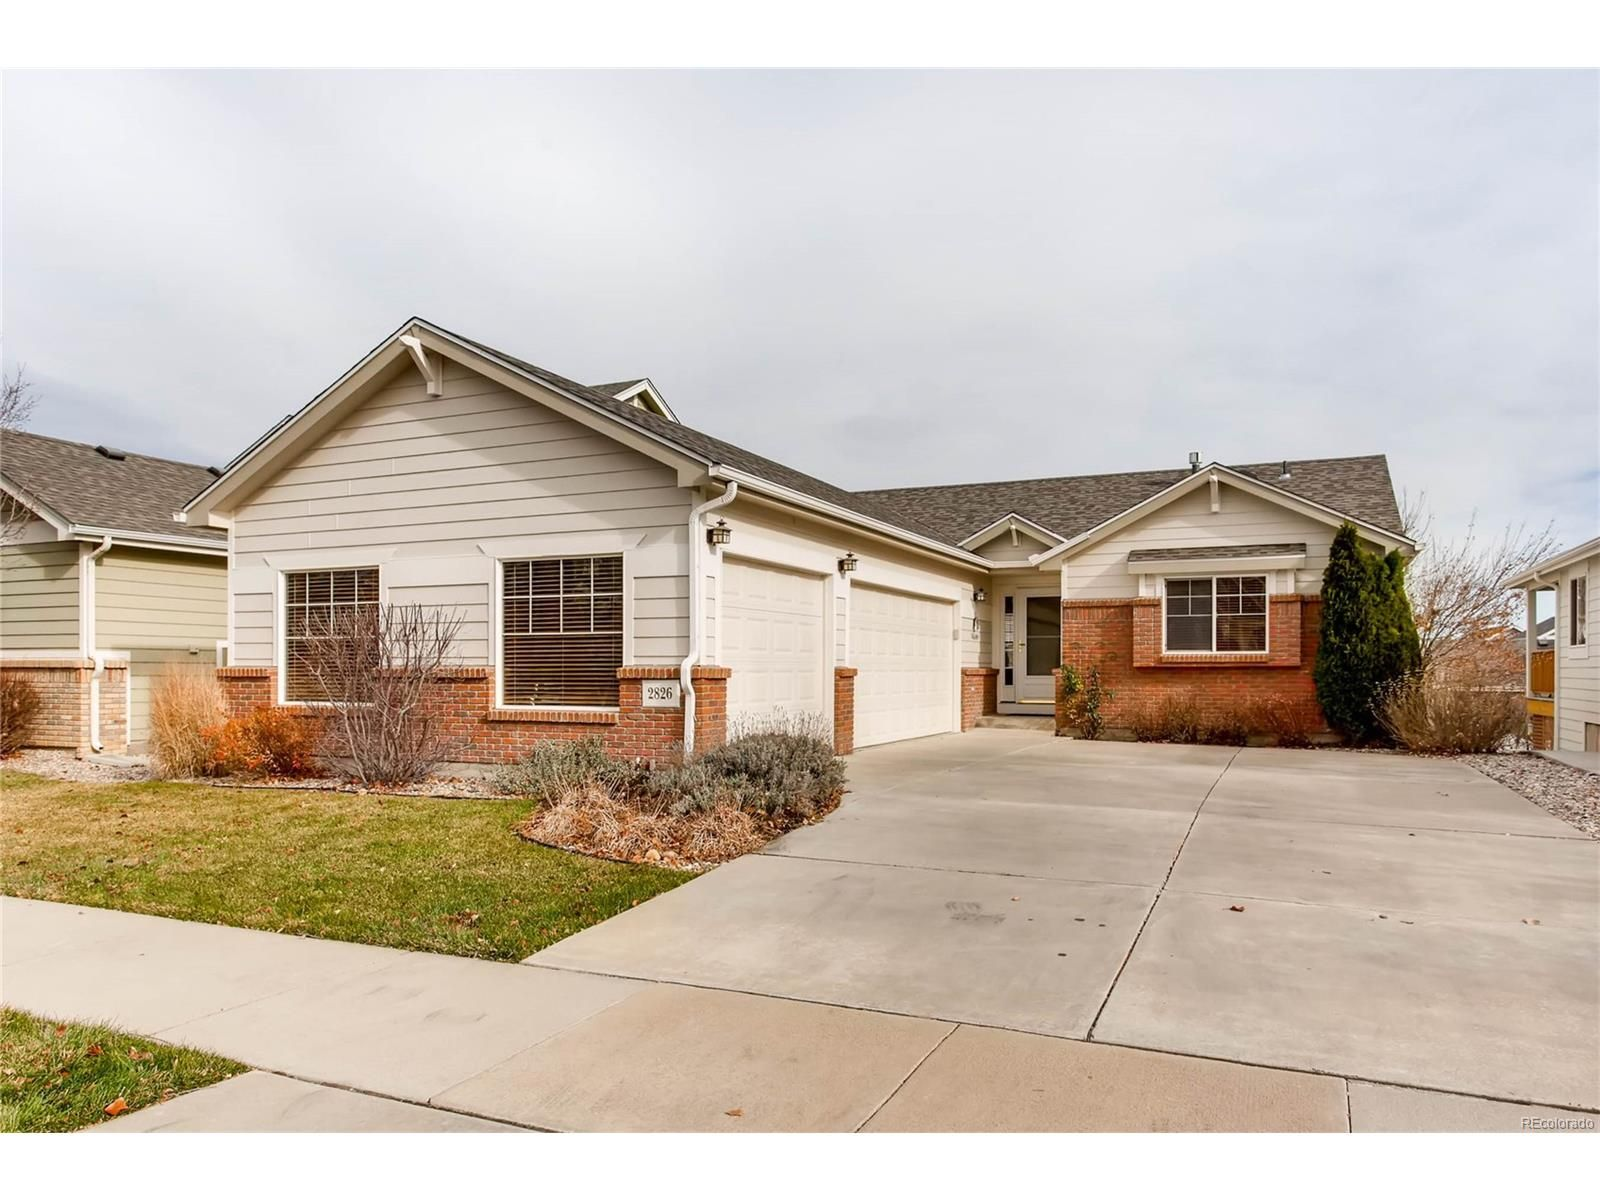 2826 Chase Dr, Fort Collins, CO 80525 - Recently Sold | Trulia